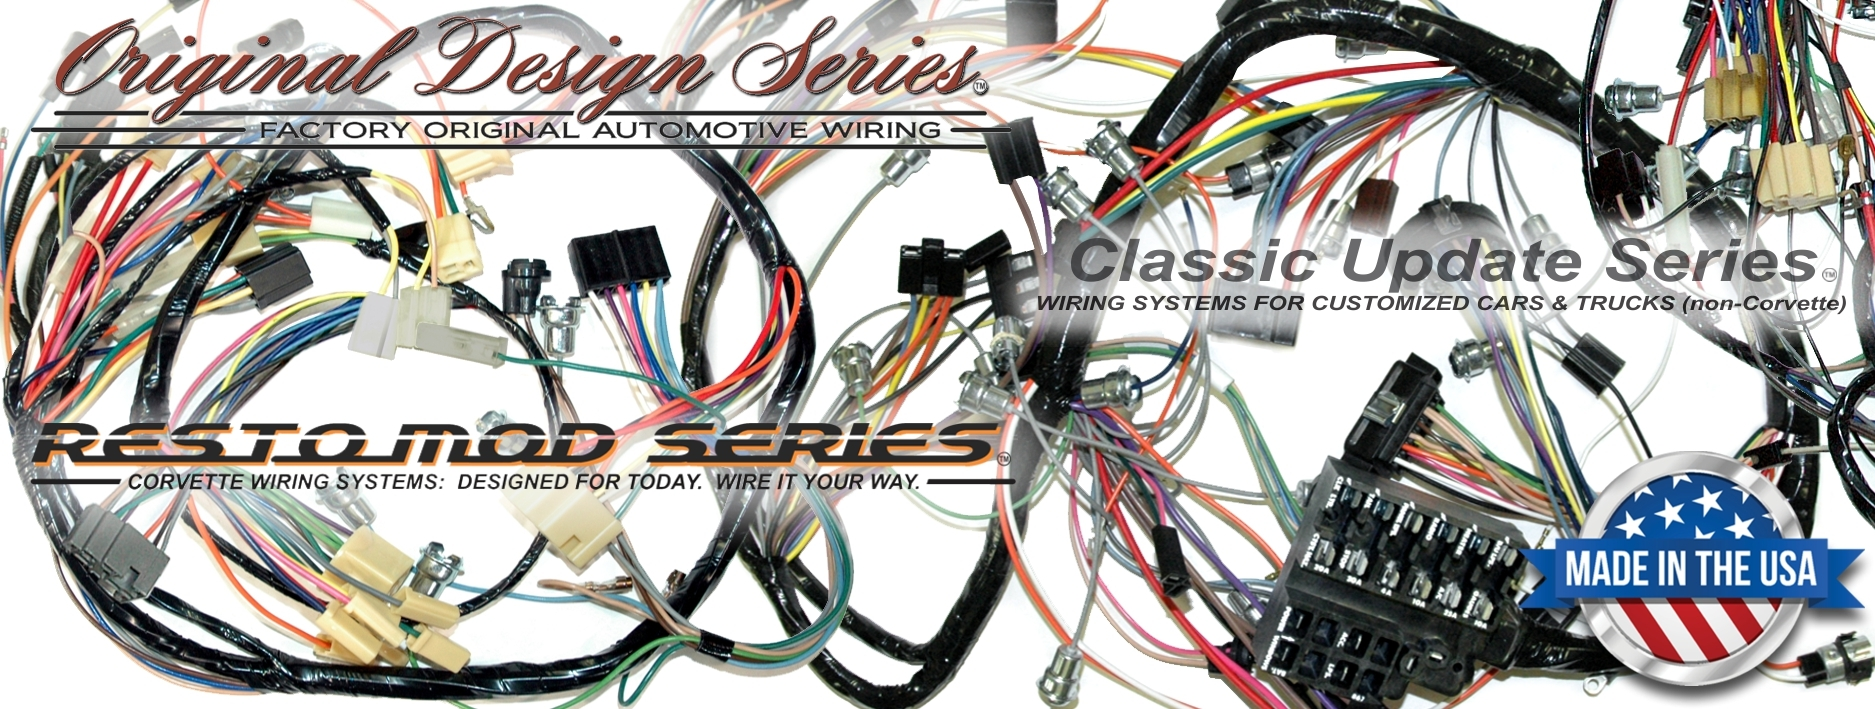 C3 Corvette Wiring Harness Diagram Libraries Cigarette Lighter W Housing 19561957 Todaysexact Oem Reproduction Harnesses And Restomod Systems